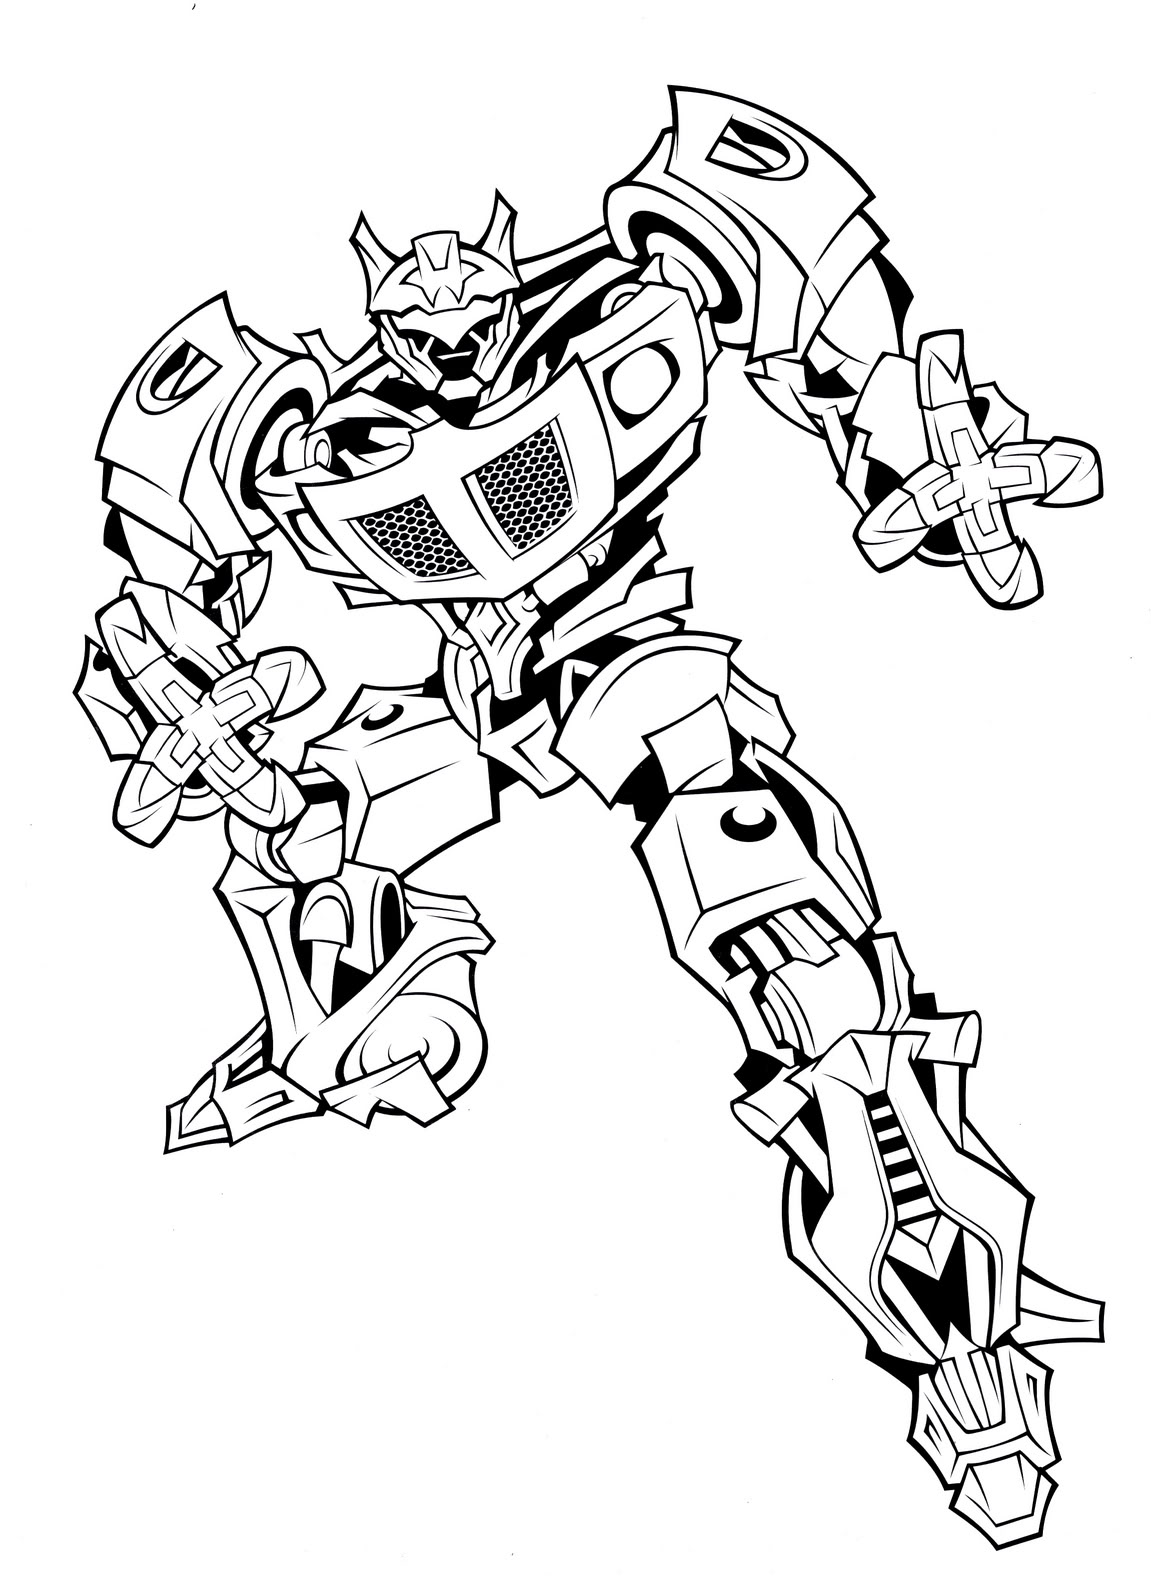 Transformer coloring pictures to print murderthestout for Transformers coloring pages to print